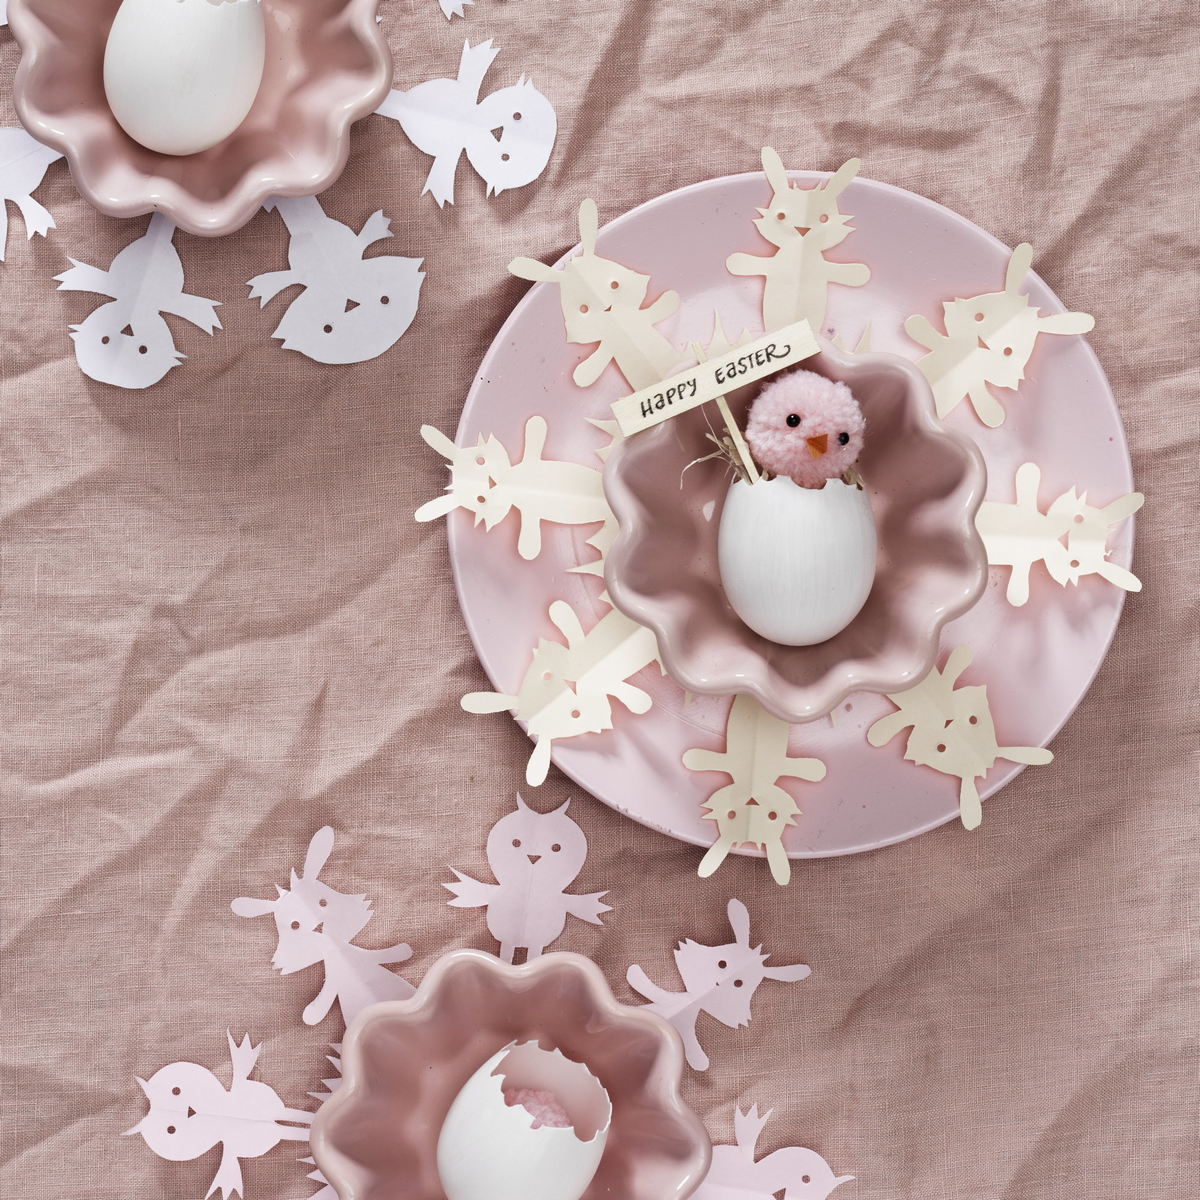 Cut out adorable Easter figures